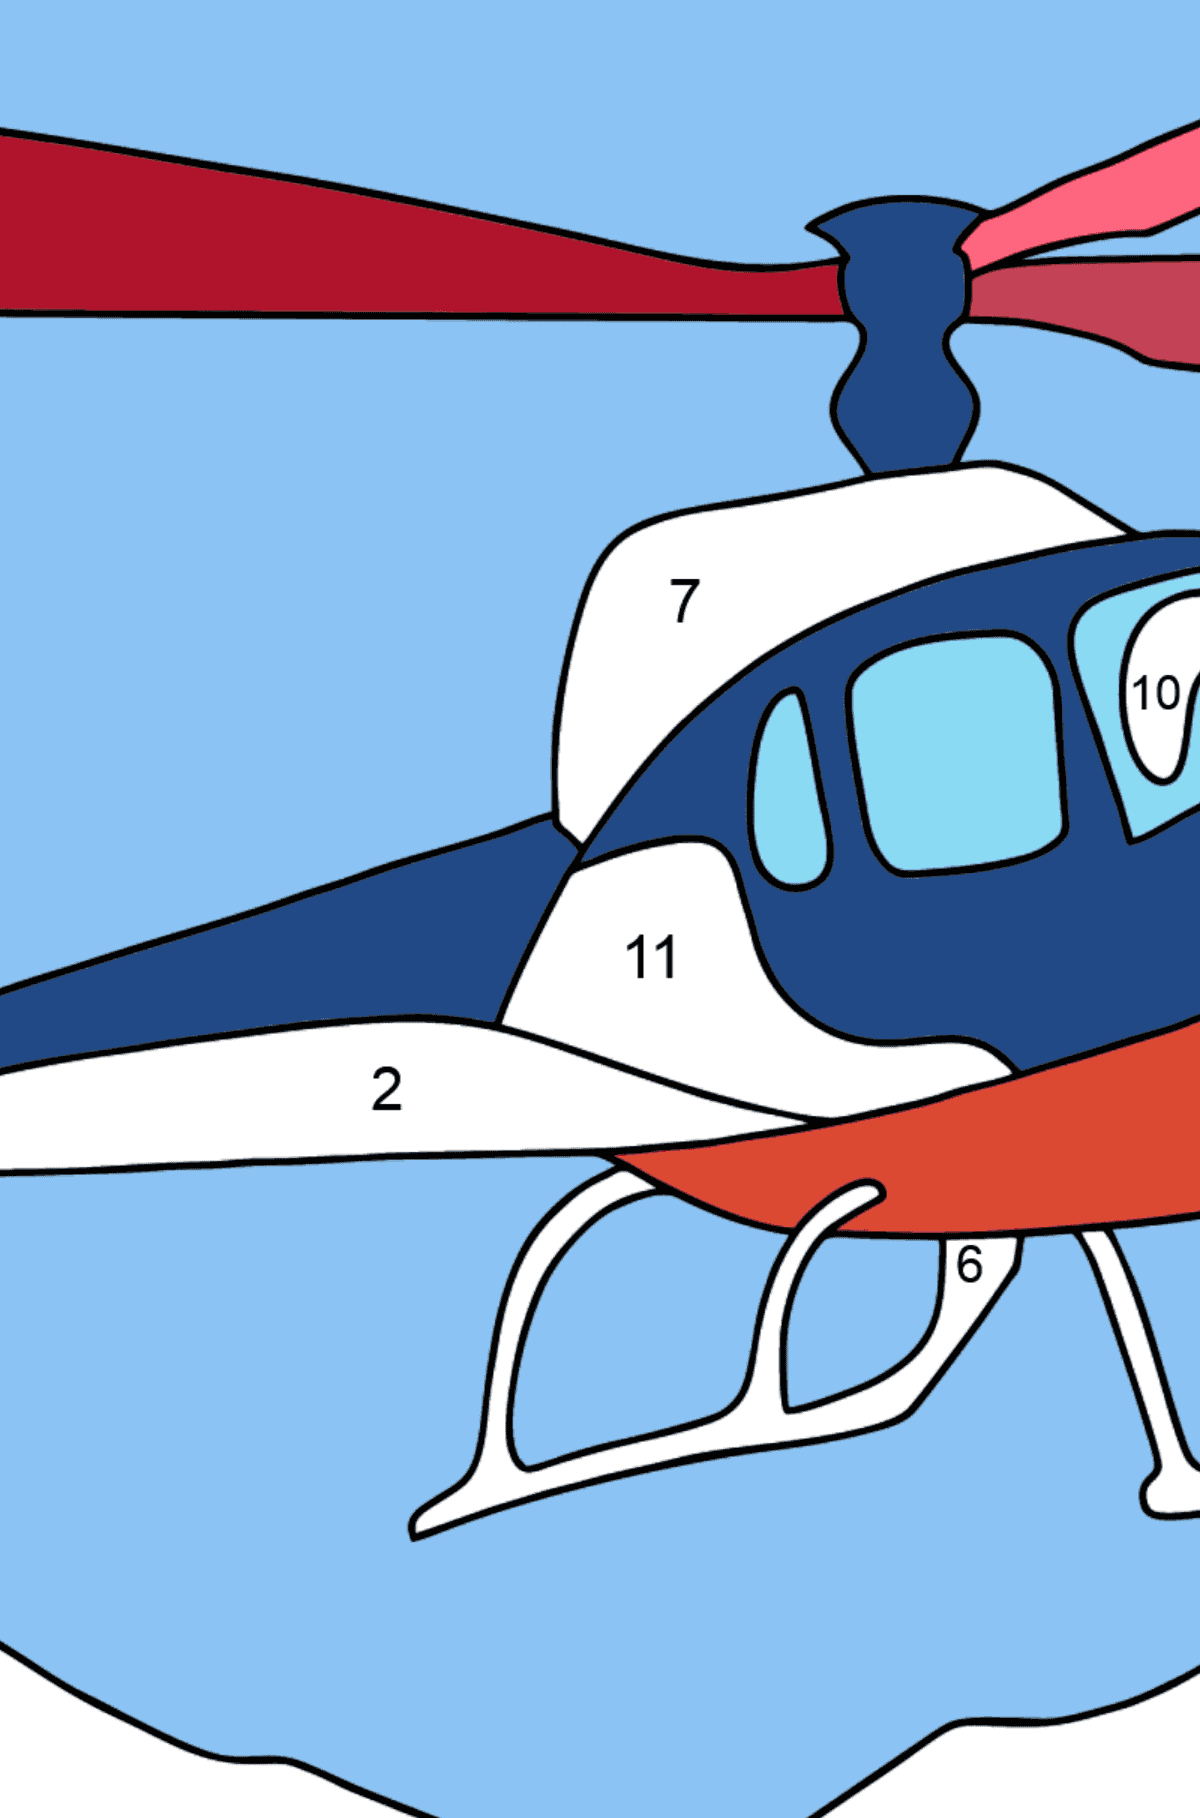 Coloring Page - A City Helicopter - Coloring by Numbers for Kids